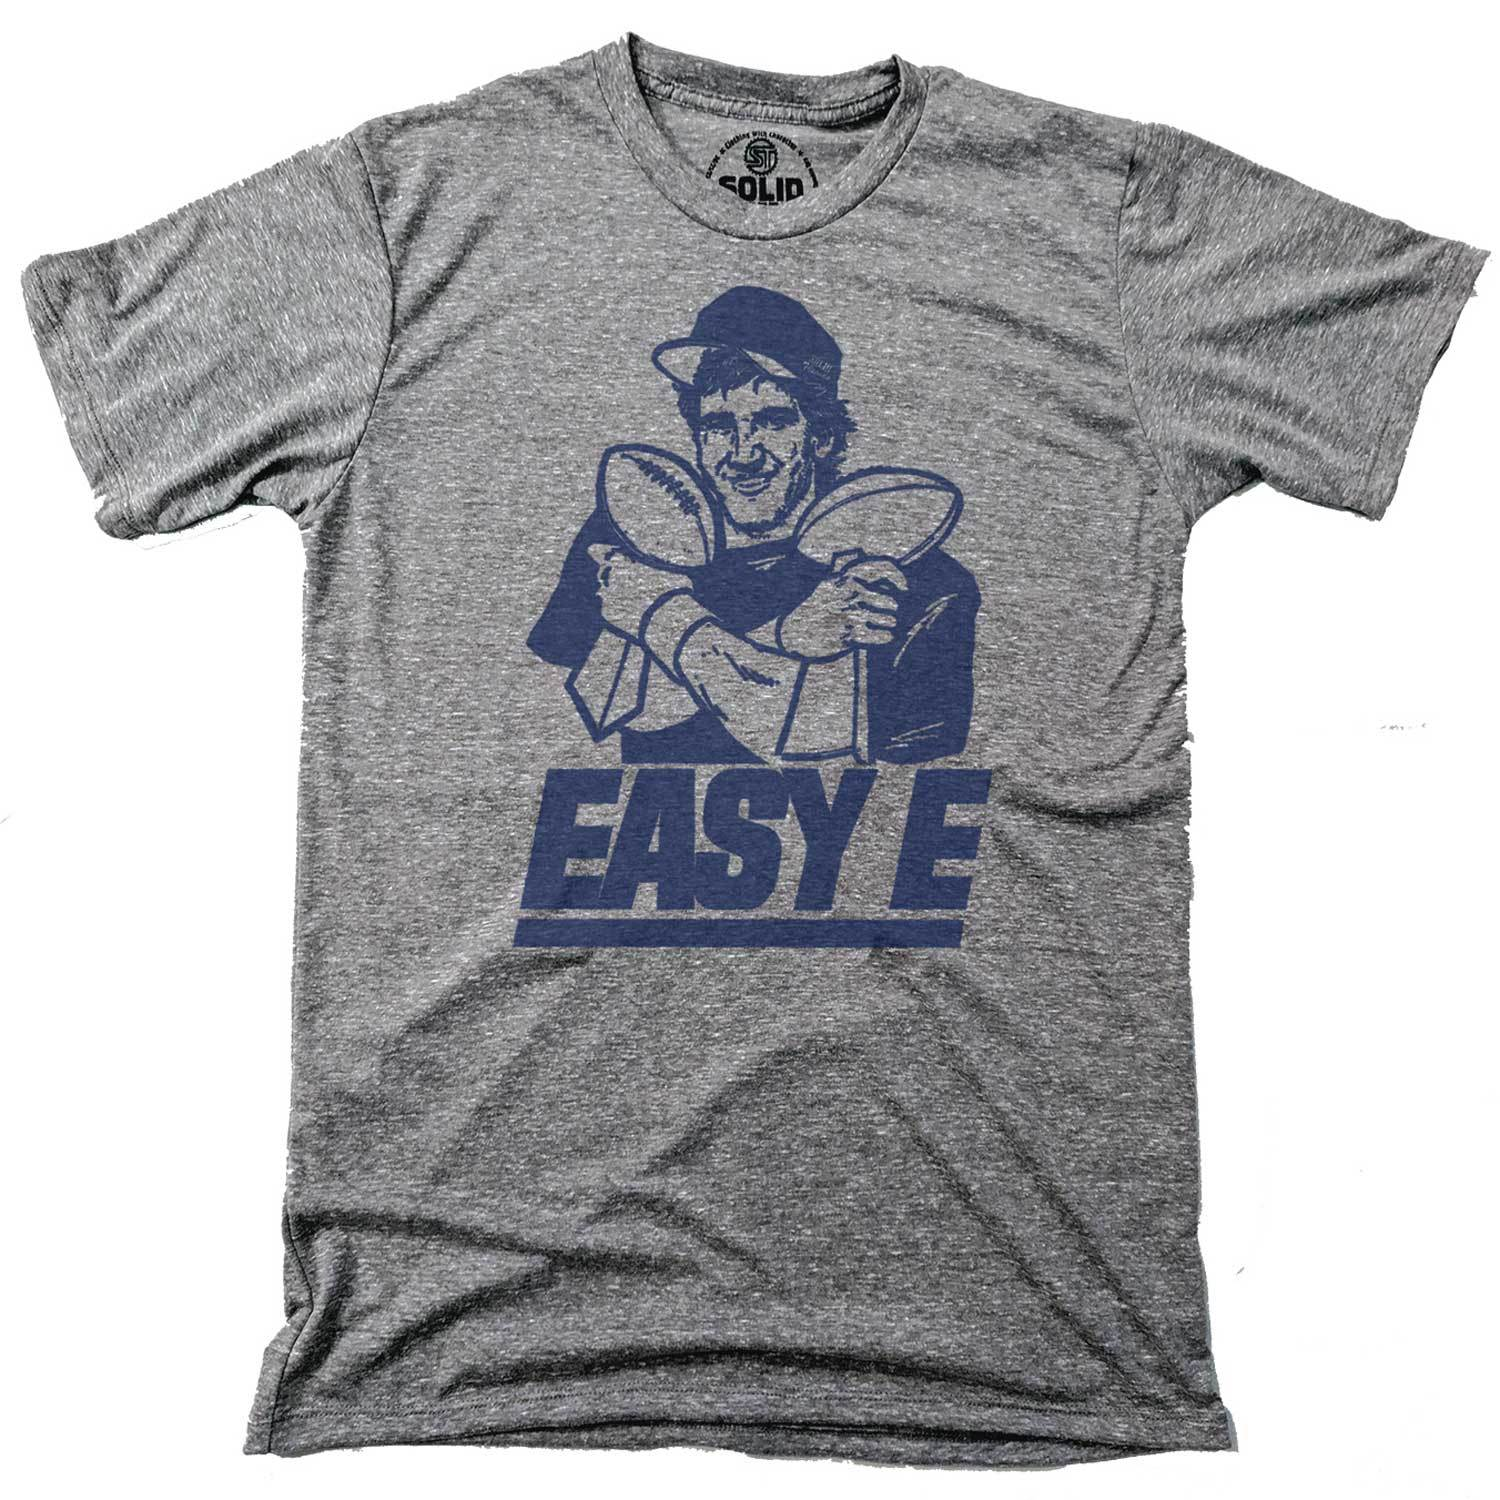 mens_easy_e_vintage_inspired_triblend_grey_tee_shirt_with_retro_eli_manning_graphic